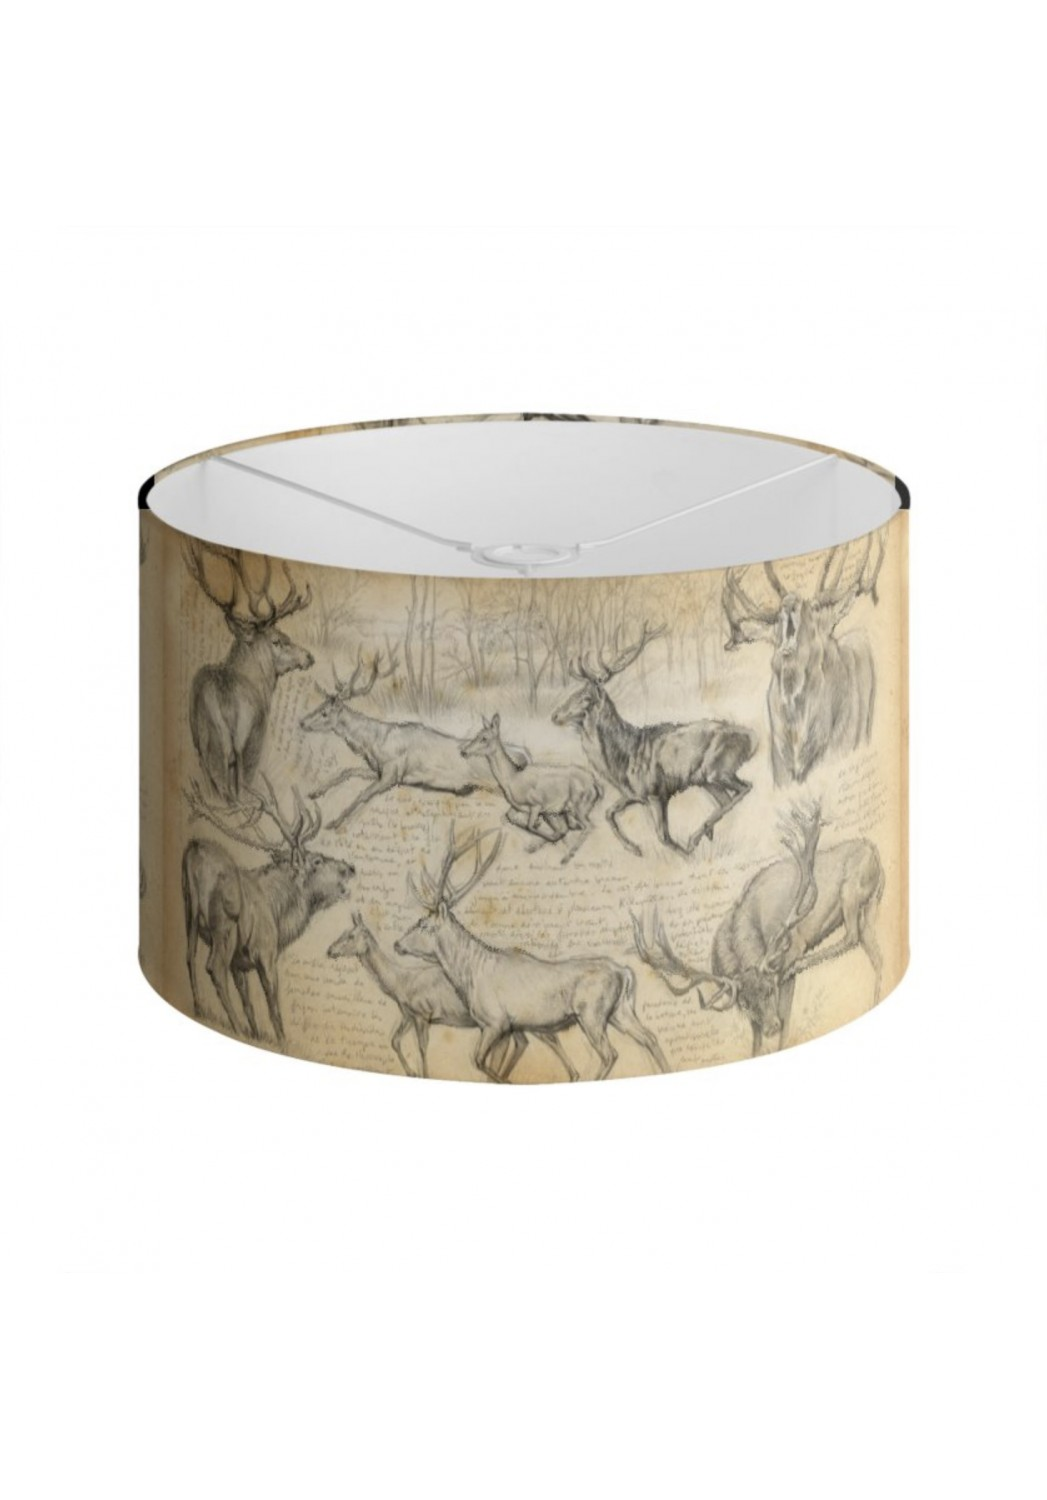 Marcello-art: Decoration accessoiries Lampshade 271 Red deer